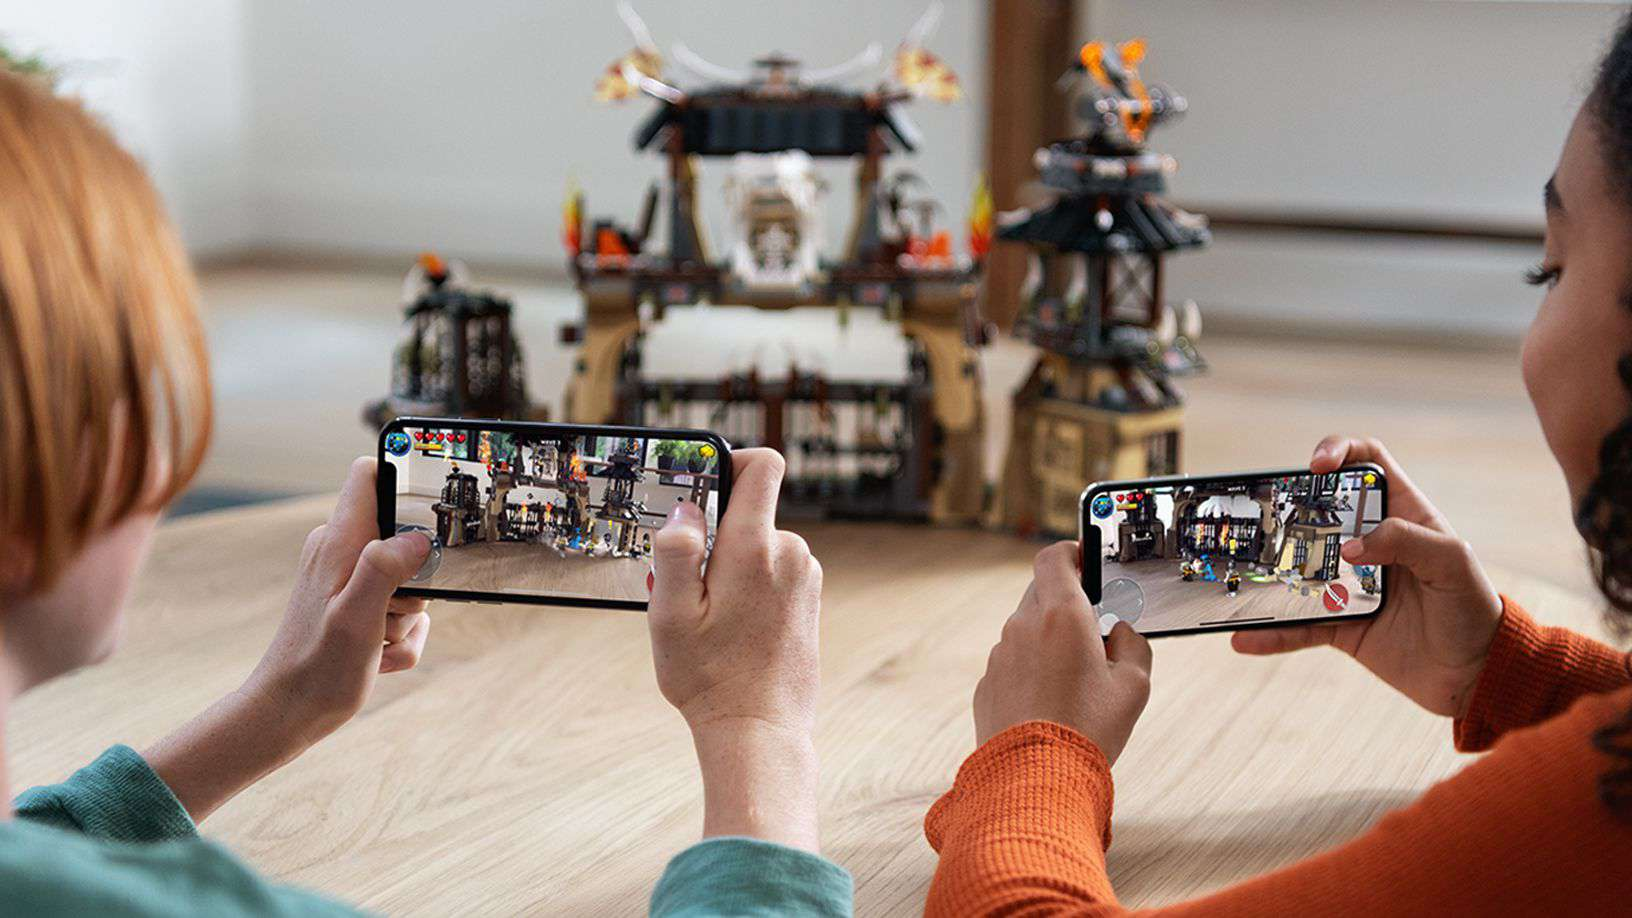 Children playing with augmented reality on iPhone with lego castle in the background